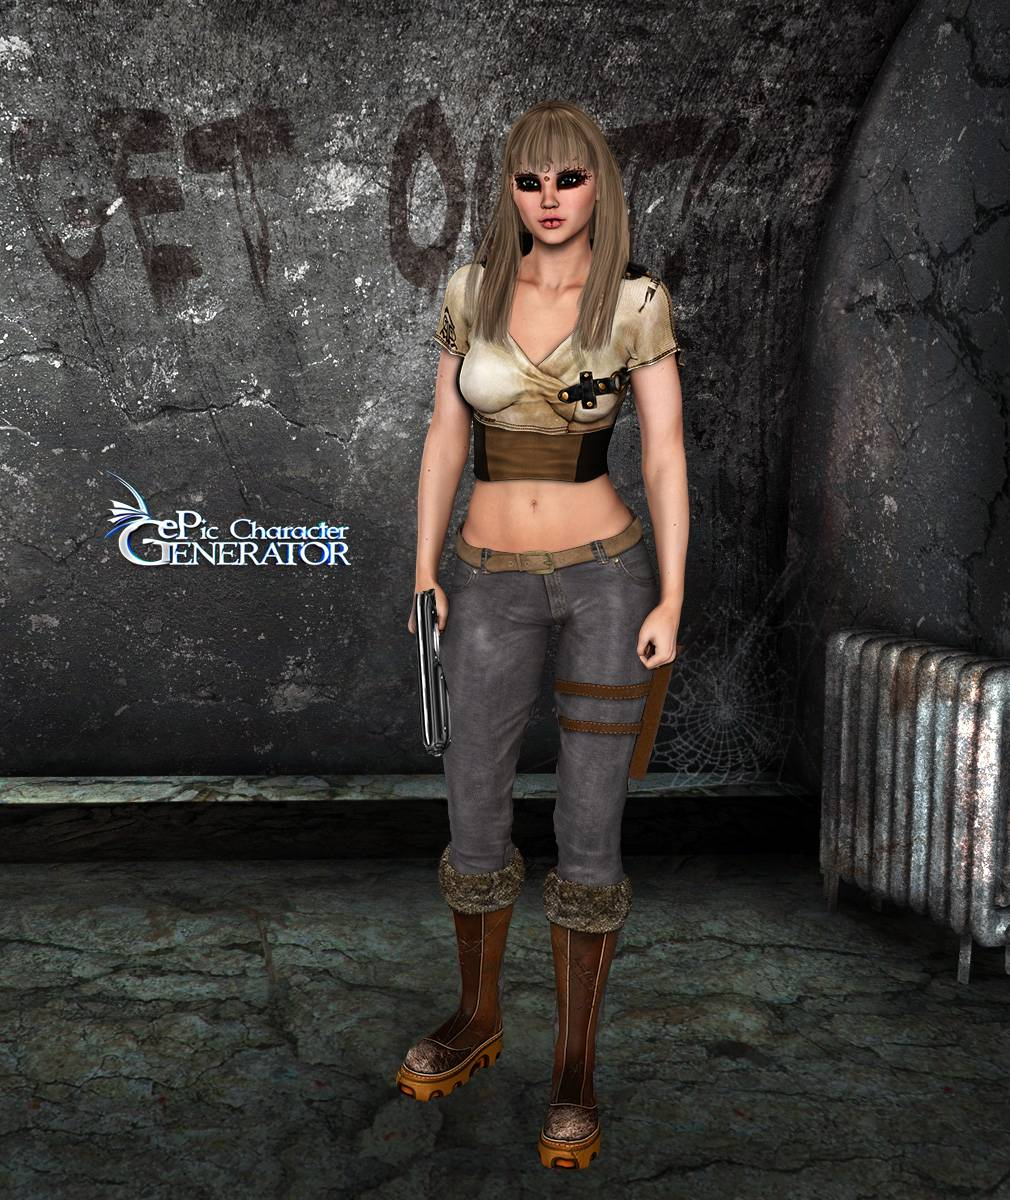 ePic Character Generator Season 2 Female Post Apocalyptic Screenshot 09